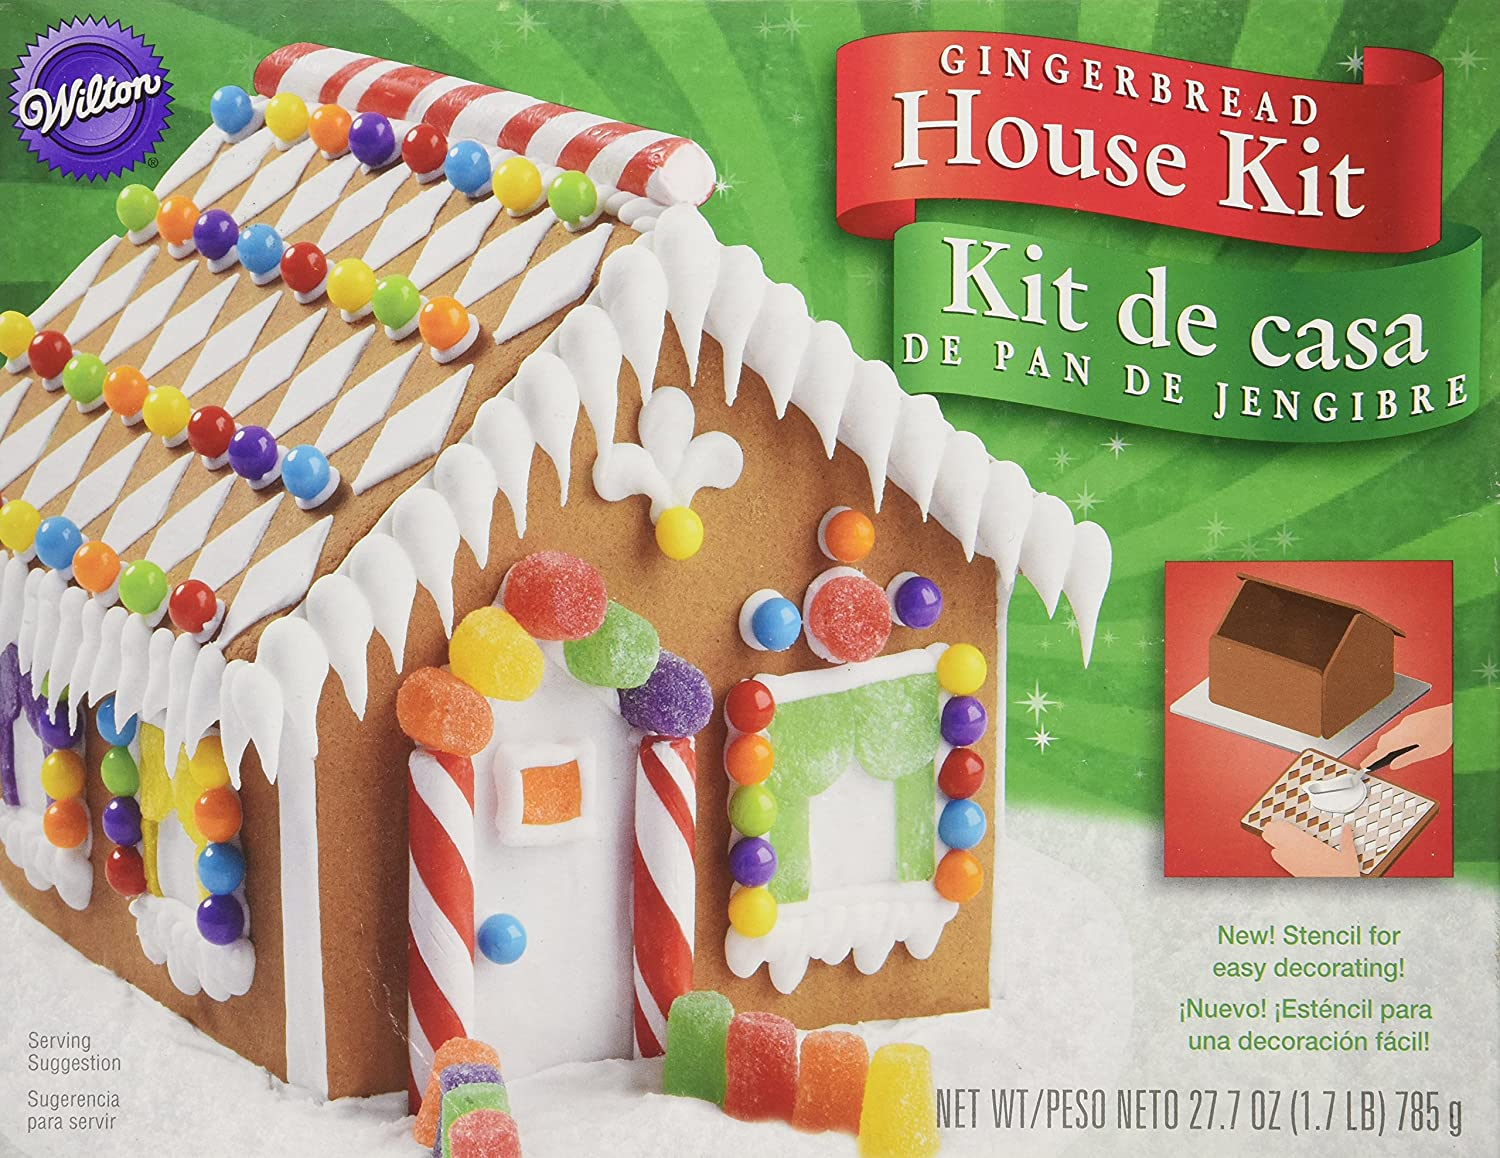 Amazon.com : Wilton 2104-1914 Pre-Baked Gingerbread House Kit ...